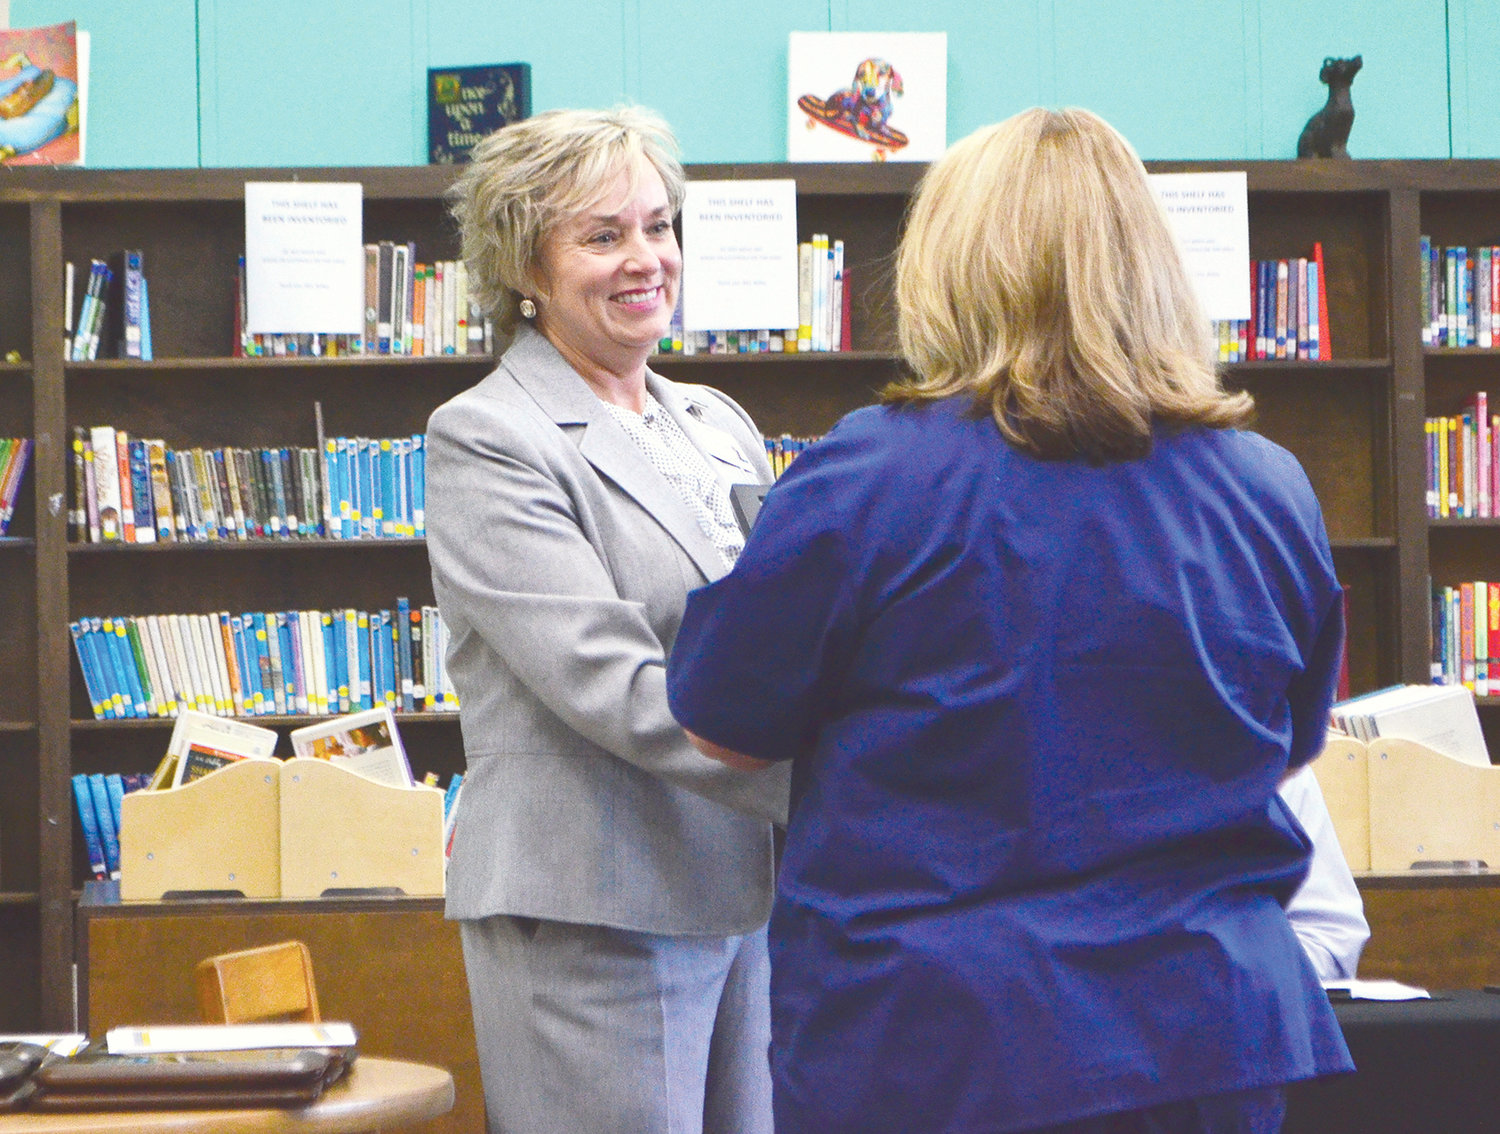 Nurses with Jasper City Schools were recently honored for their caring service in the school system.